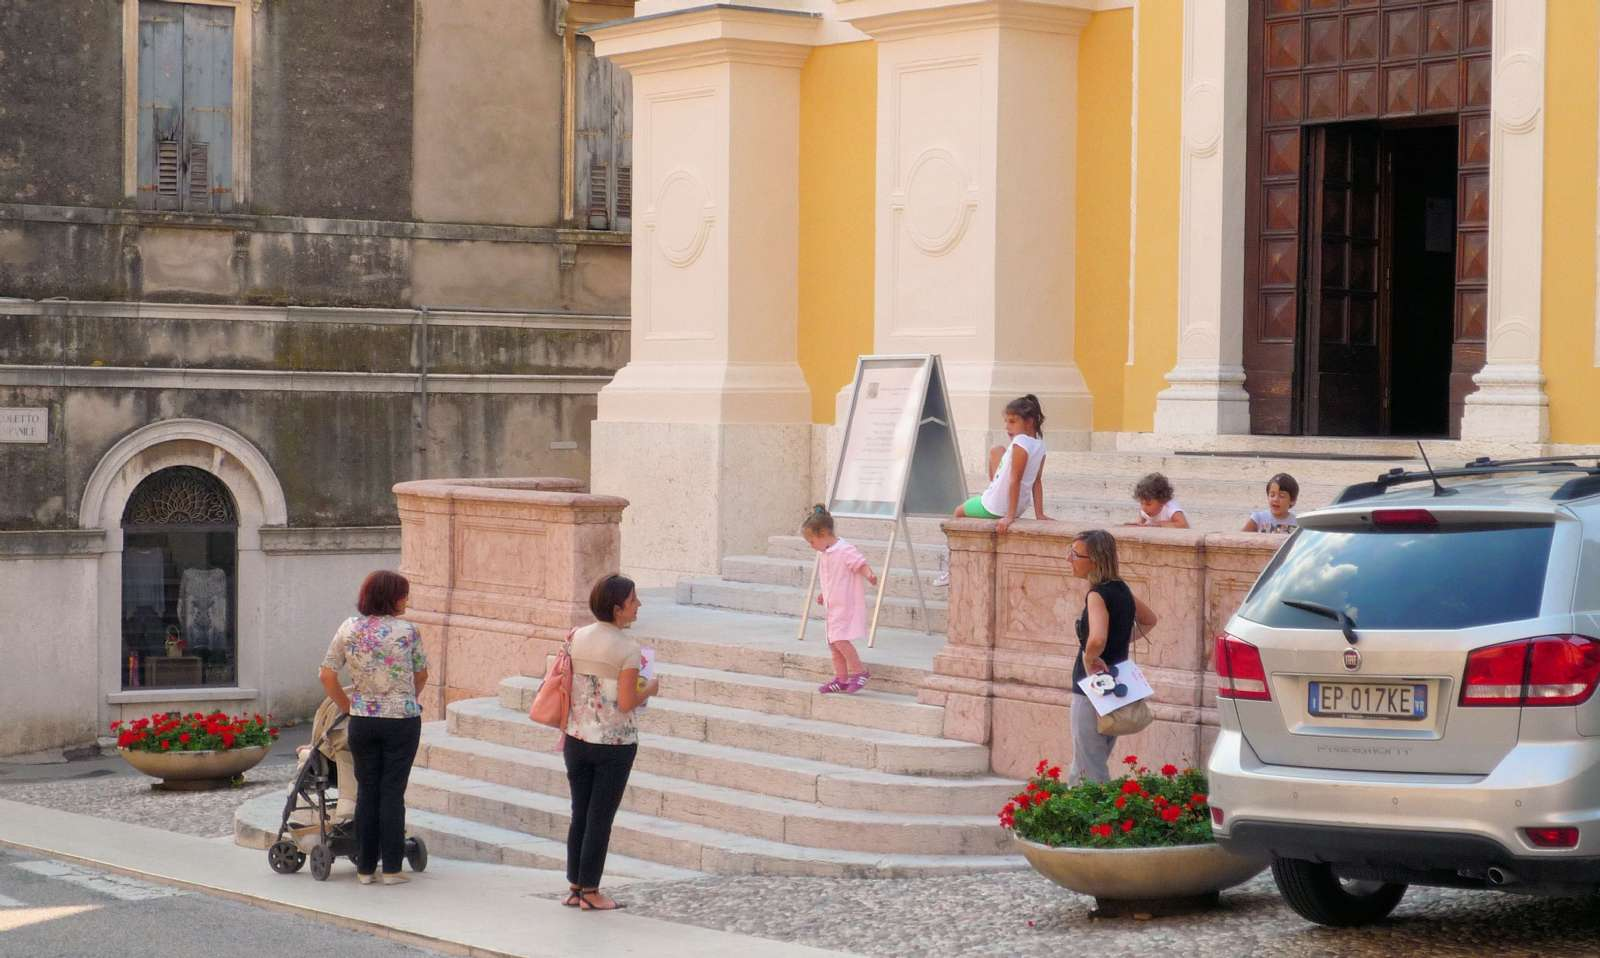 Children and their mothers stop for a chat and a little play on the town's church stairs on the way home from school and kindergarten